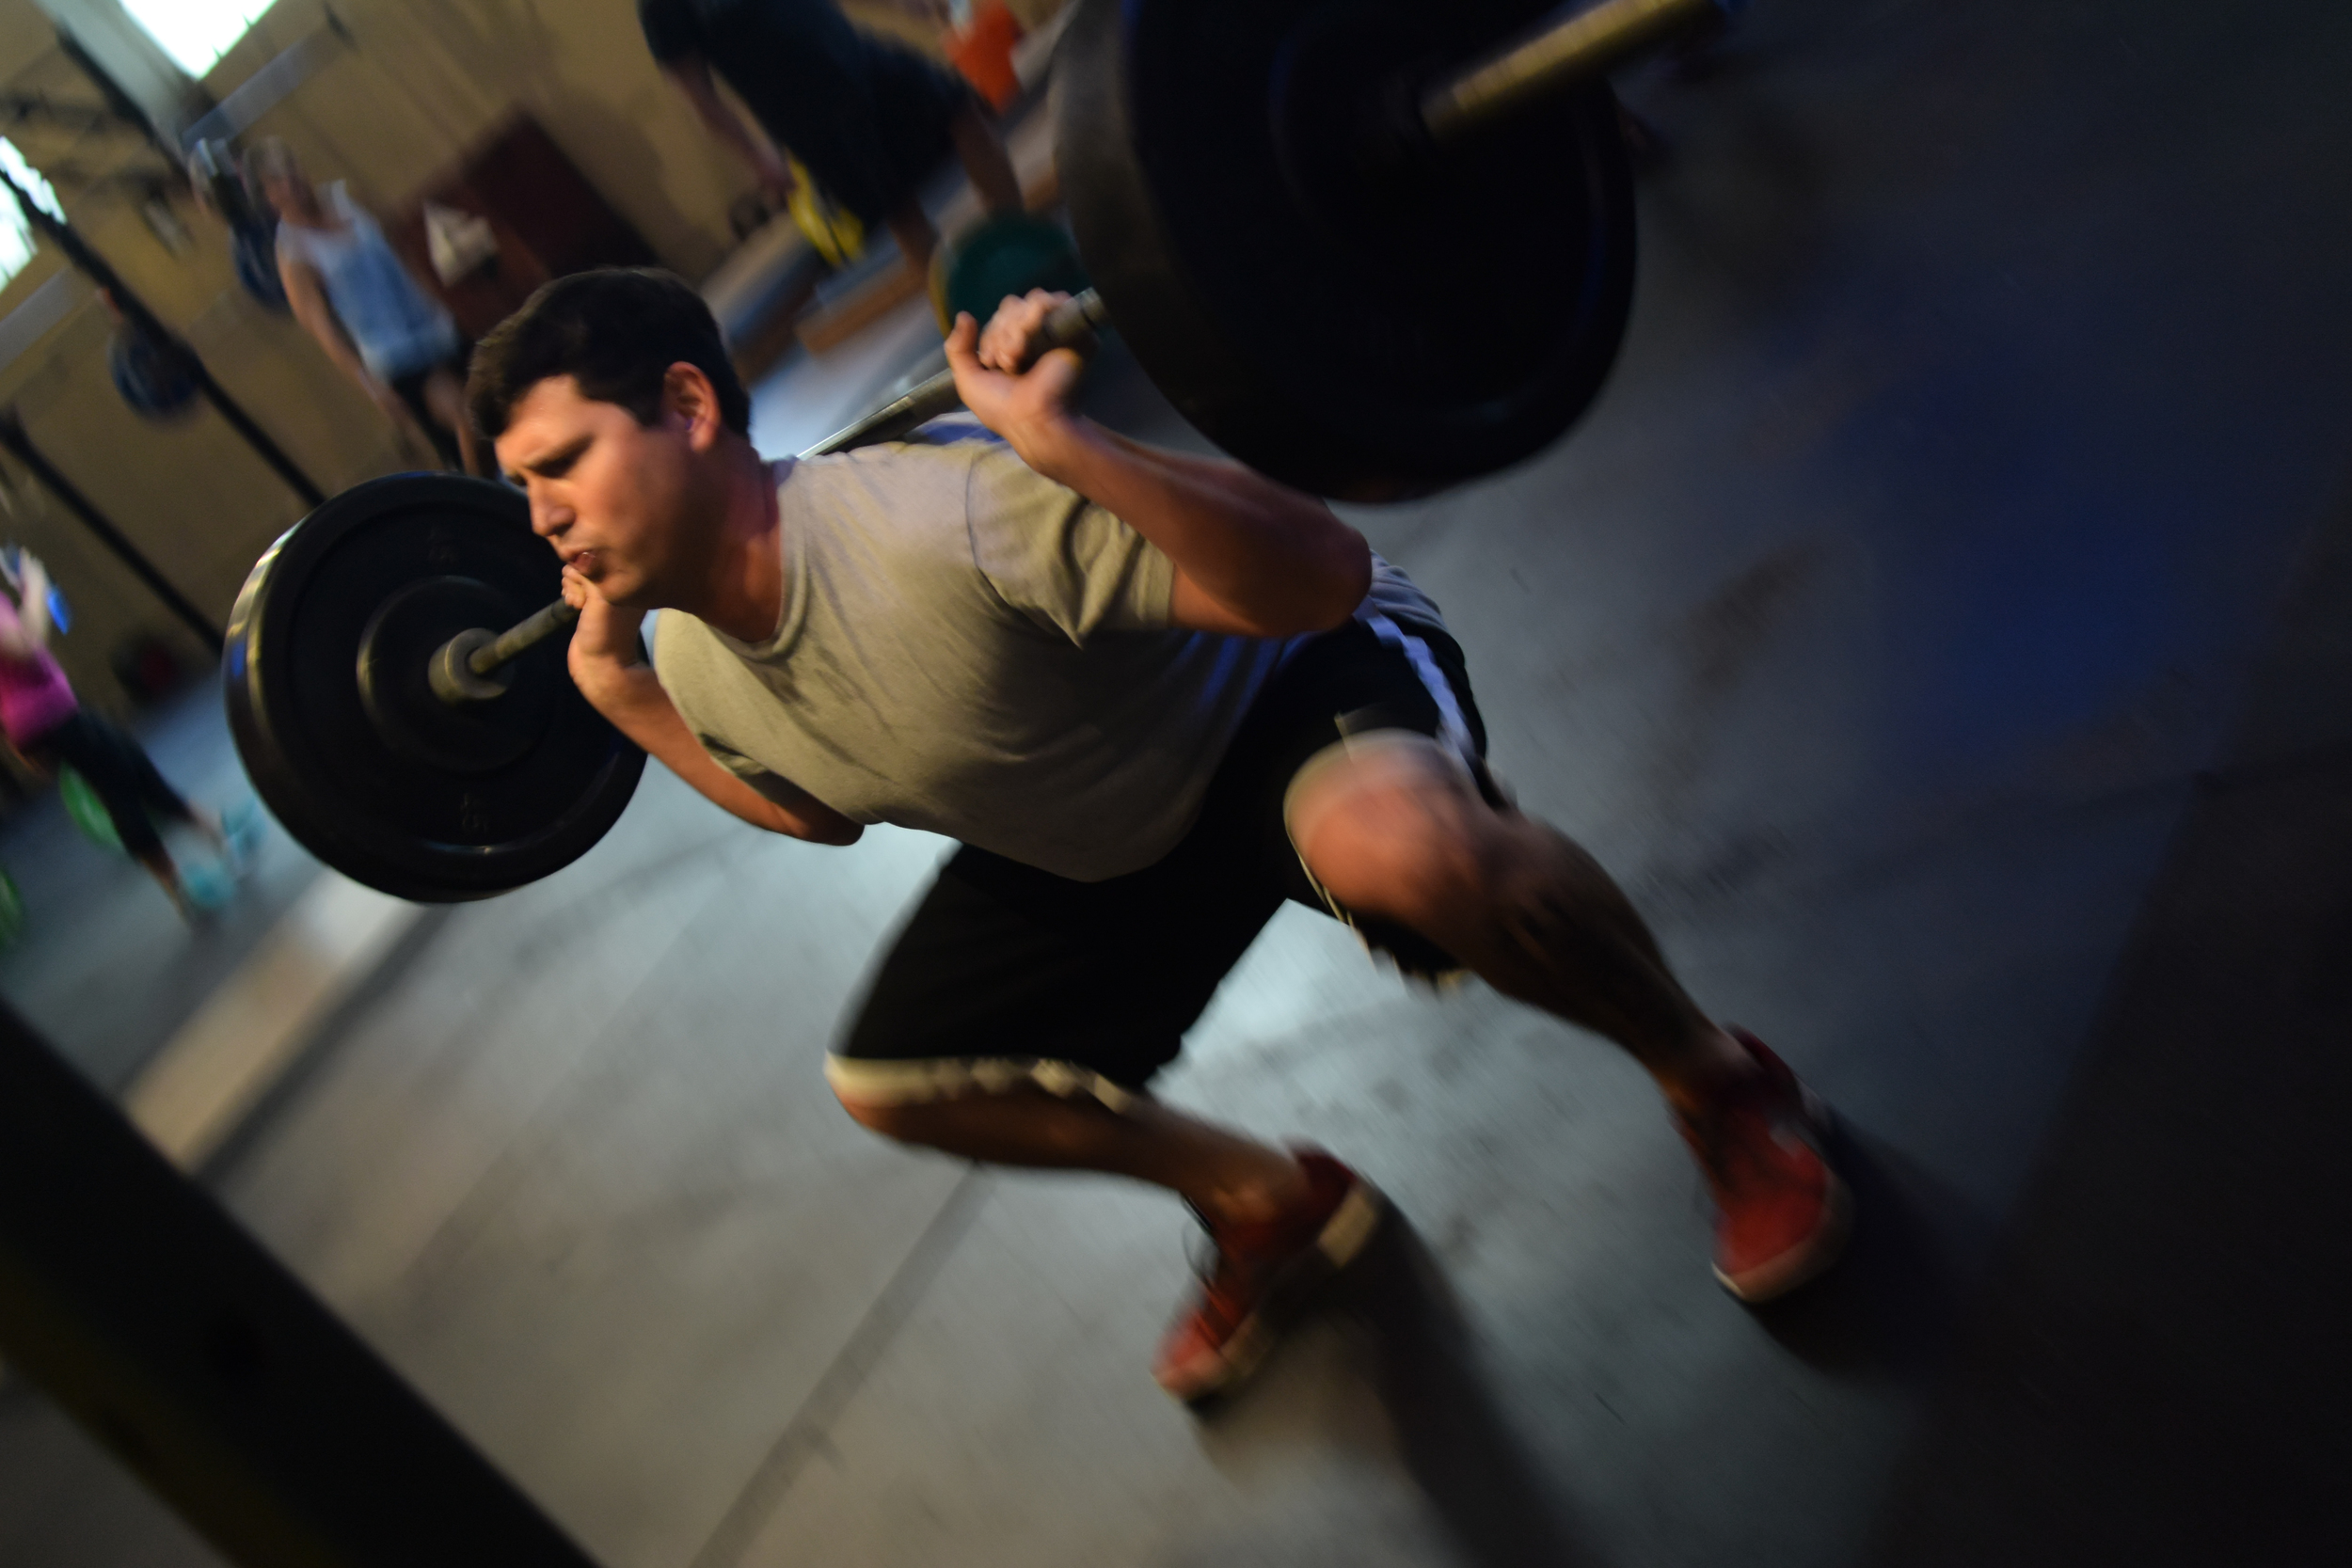 By activating his hips, Shane is able to keep his torso upright while dropping deep into full squat depth.